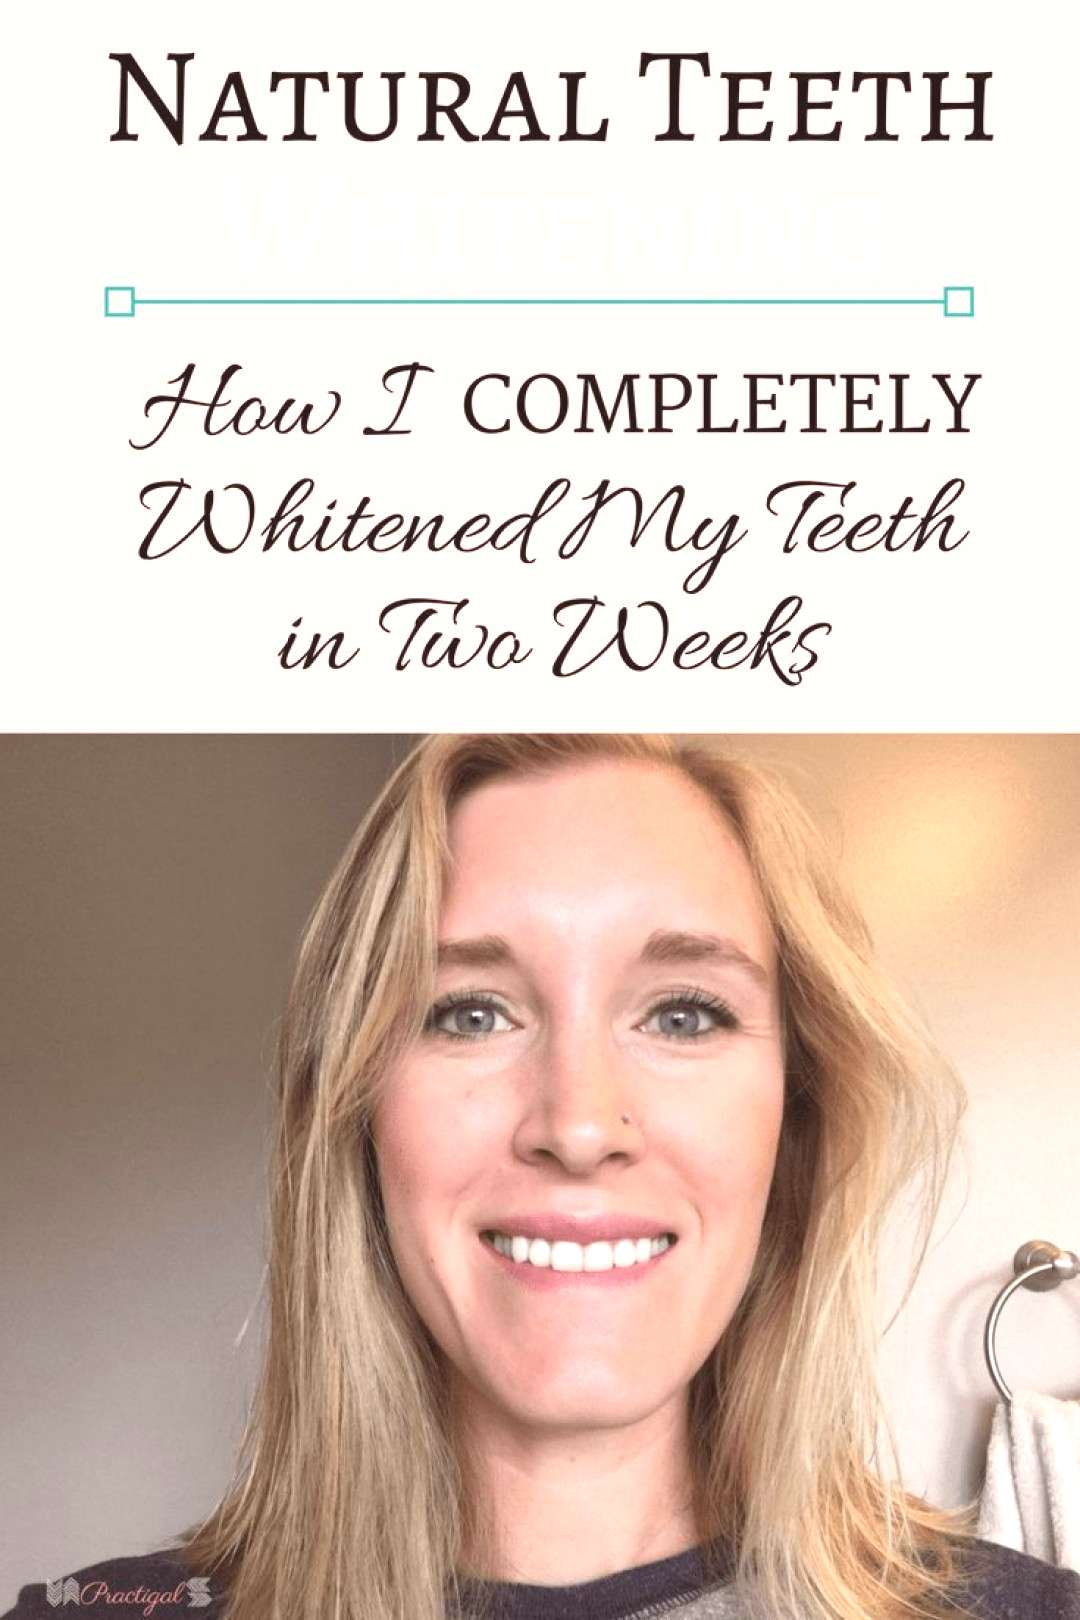 Looking for a natural teeth whitening solution that works but wont make your teeth sensitive or ha